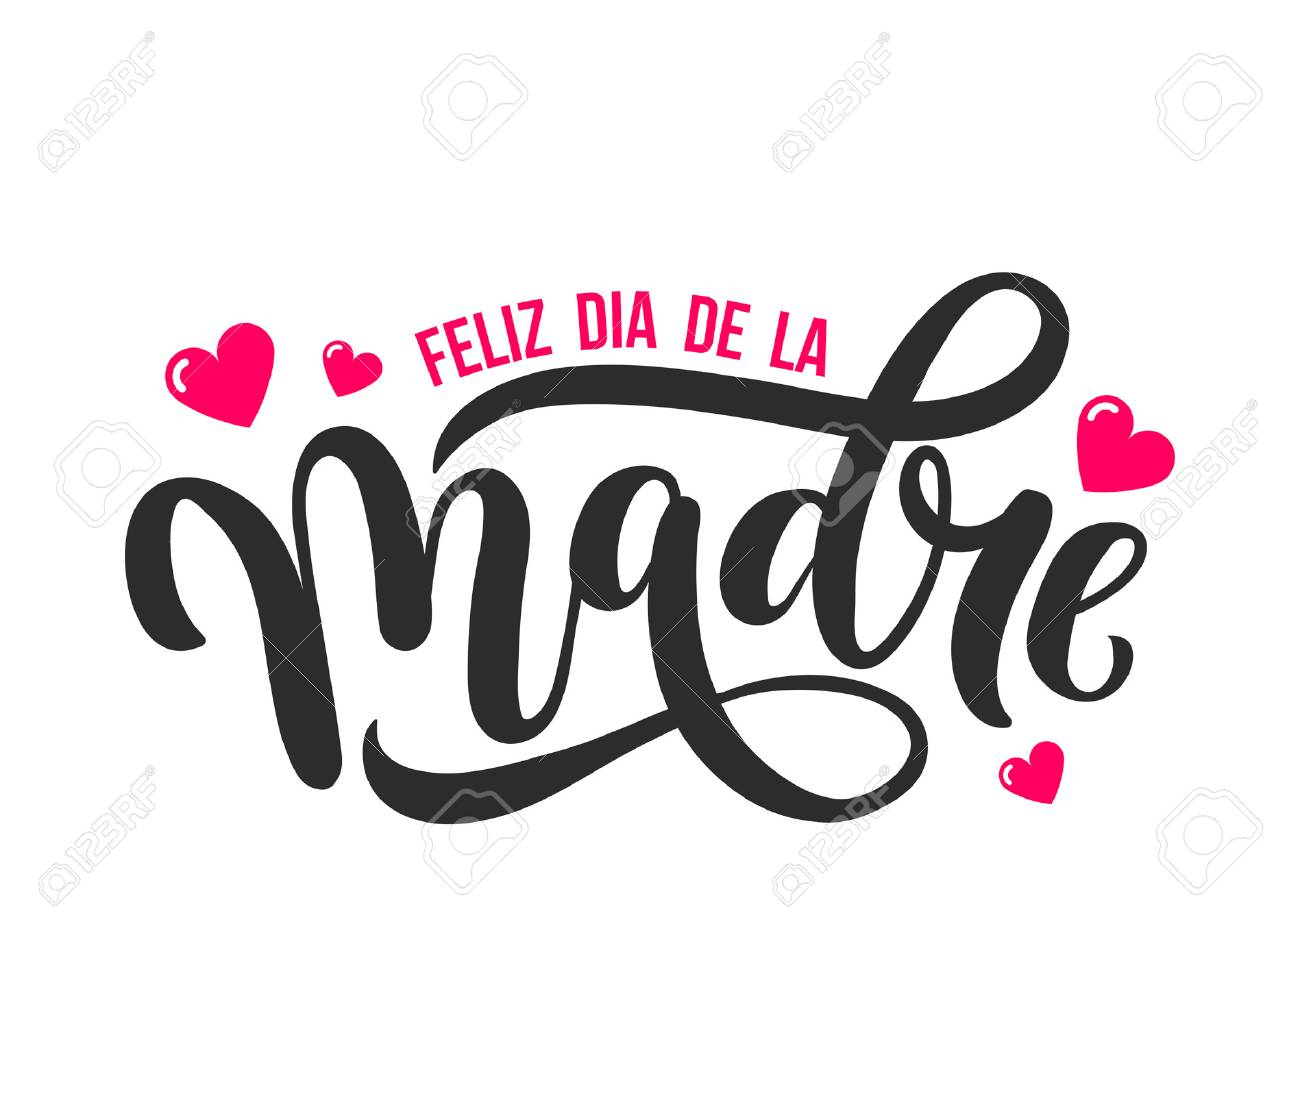 Feliz Dia De La Madre Mother Day Greeting Card In Spanish Hand Royalty Free Cliparts Vectors And Stock Illustration Image 92873598